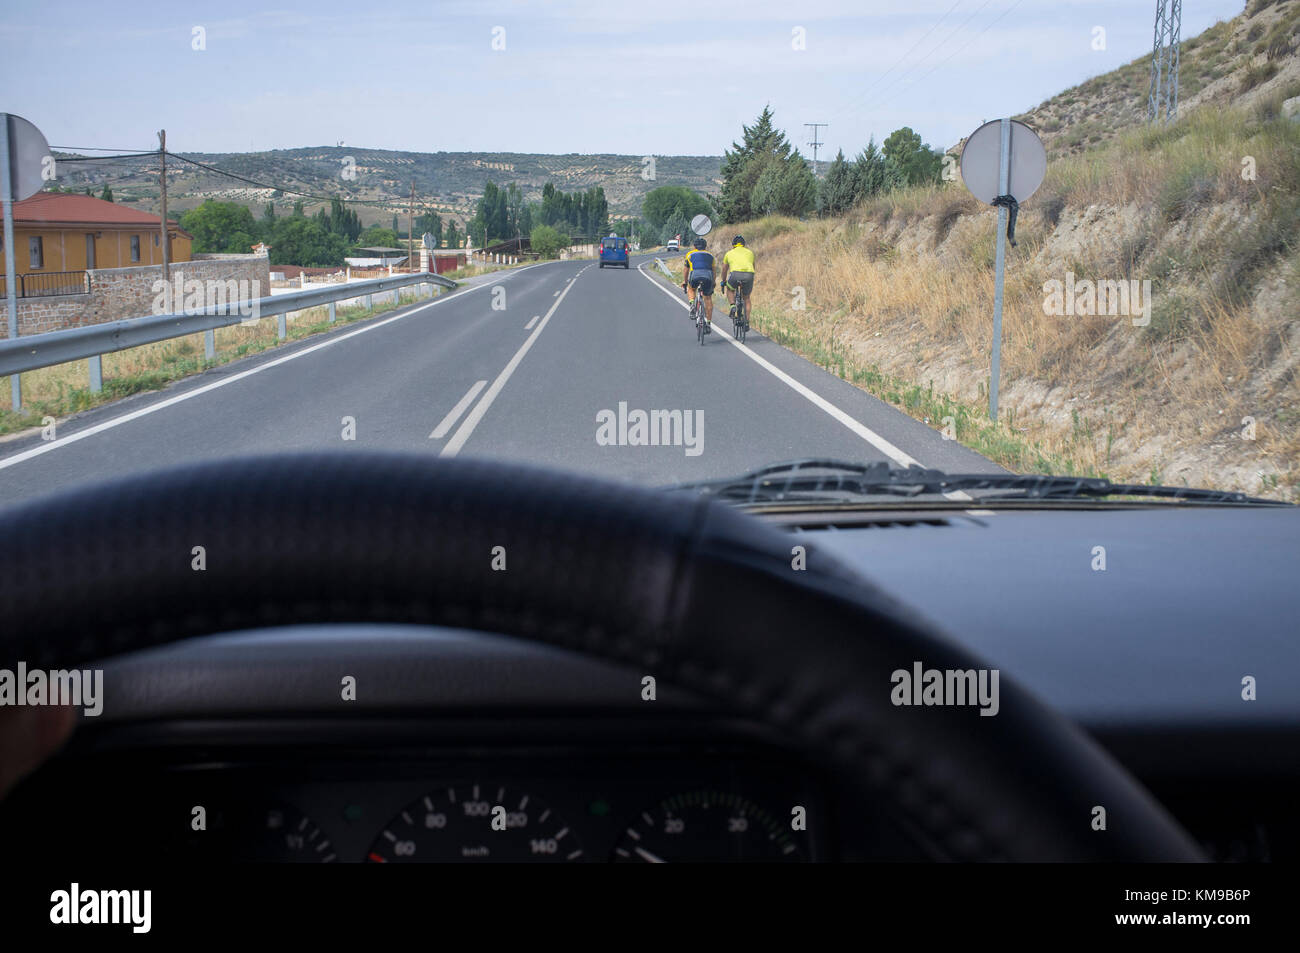 Driving slowly behind cyclists at local road. View from the inside of the car - Stock Image